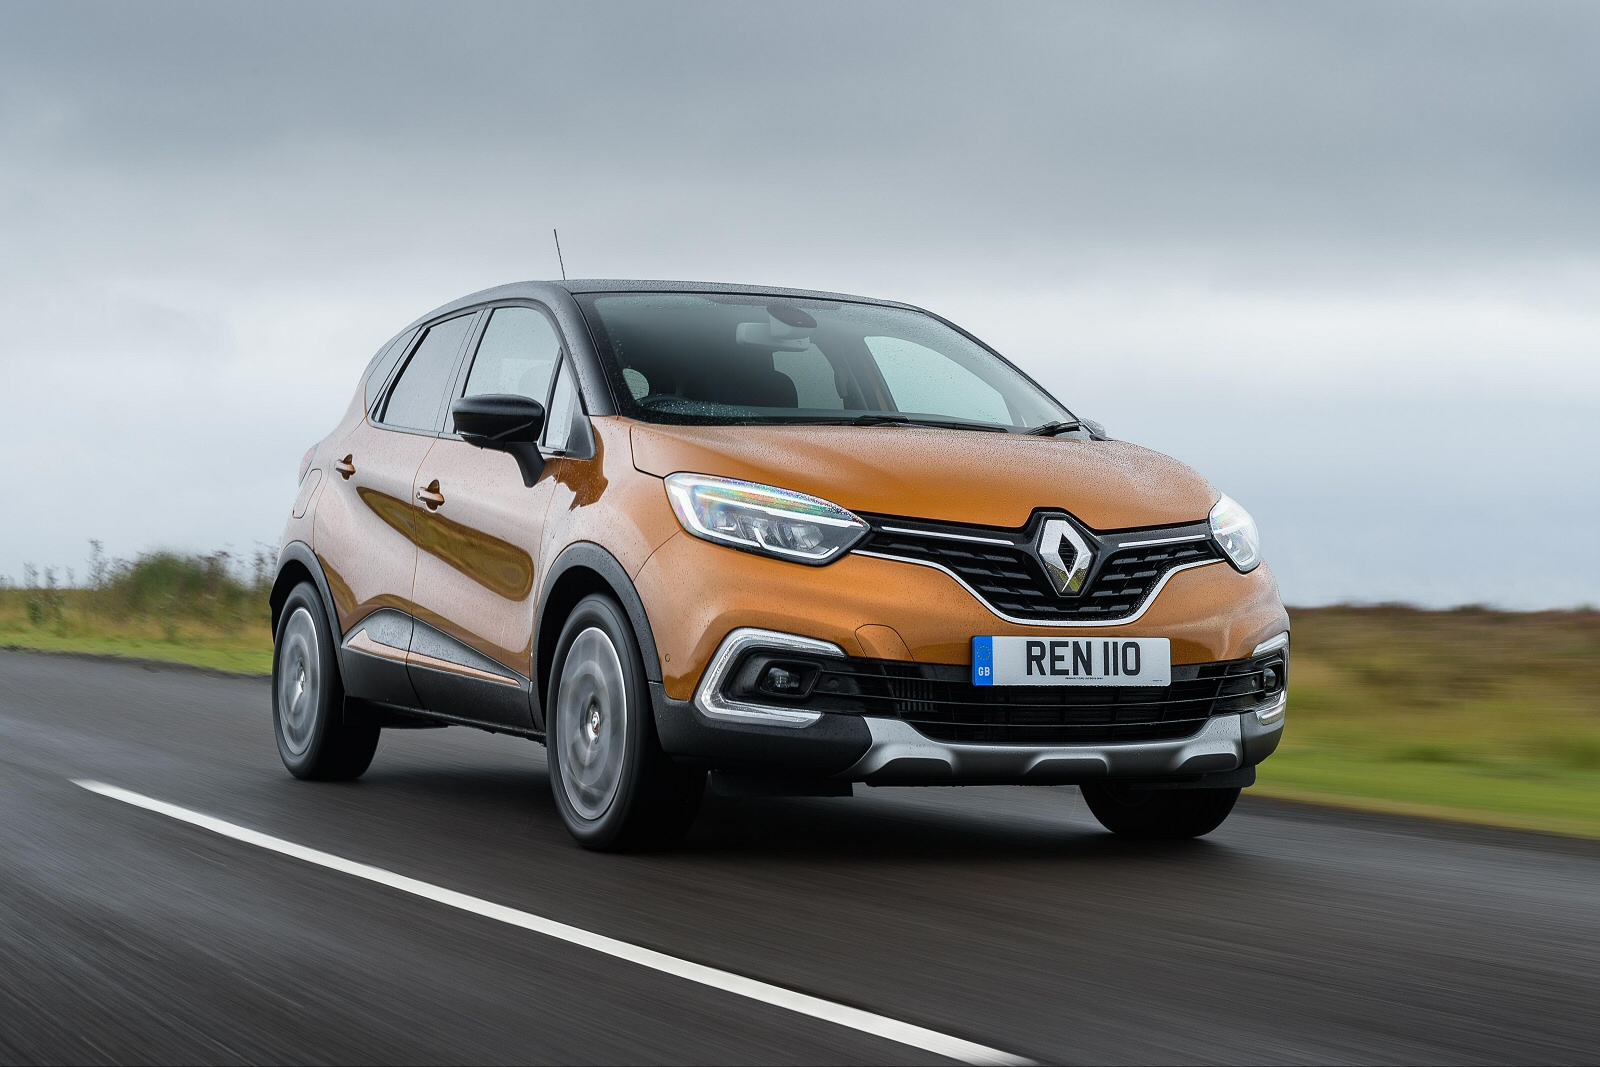 new renault captur 1 5 dci 90 gt line 5dr diesel hatchback for sale bristol street. Black Bedroom Furniture Sets. Home Design Ideas